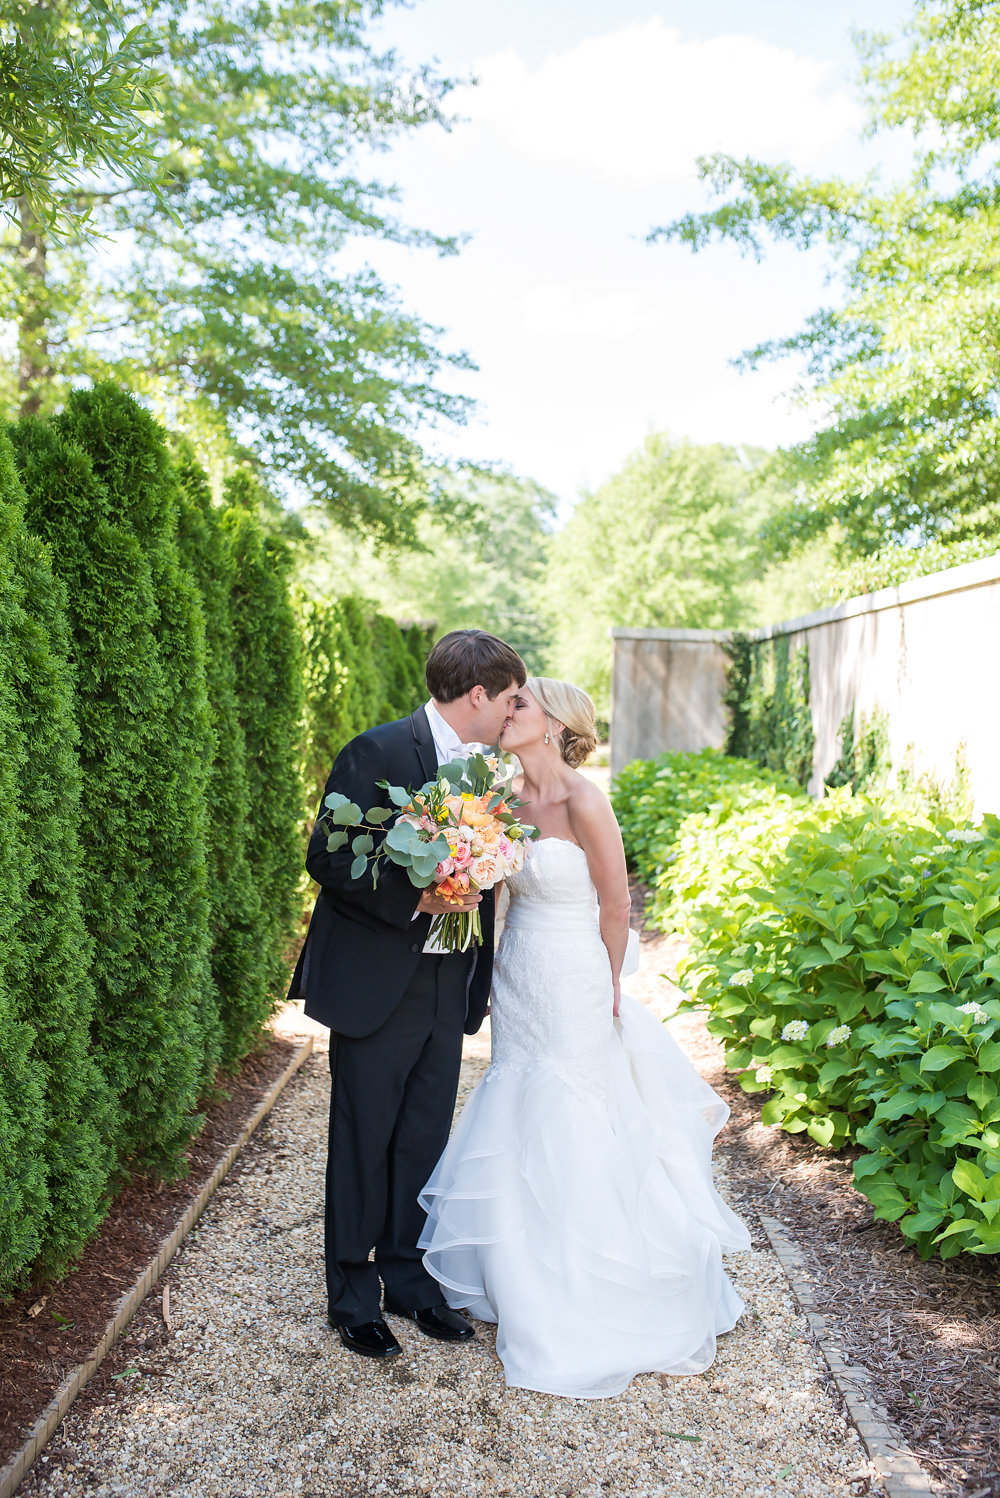 A Vibrant Modern Museum Wedding - Jule Collins Smith Museum of Fine Art Wedding -- Wedding Blog - The Overwhelmed Bride